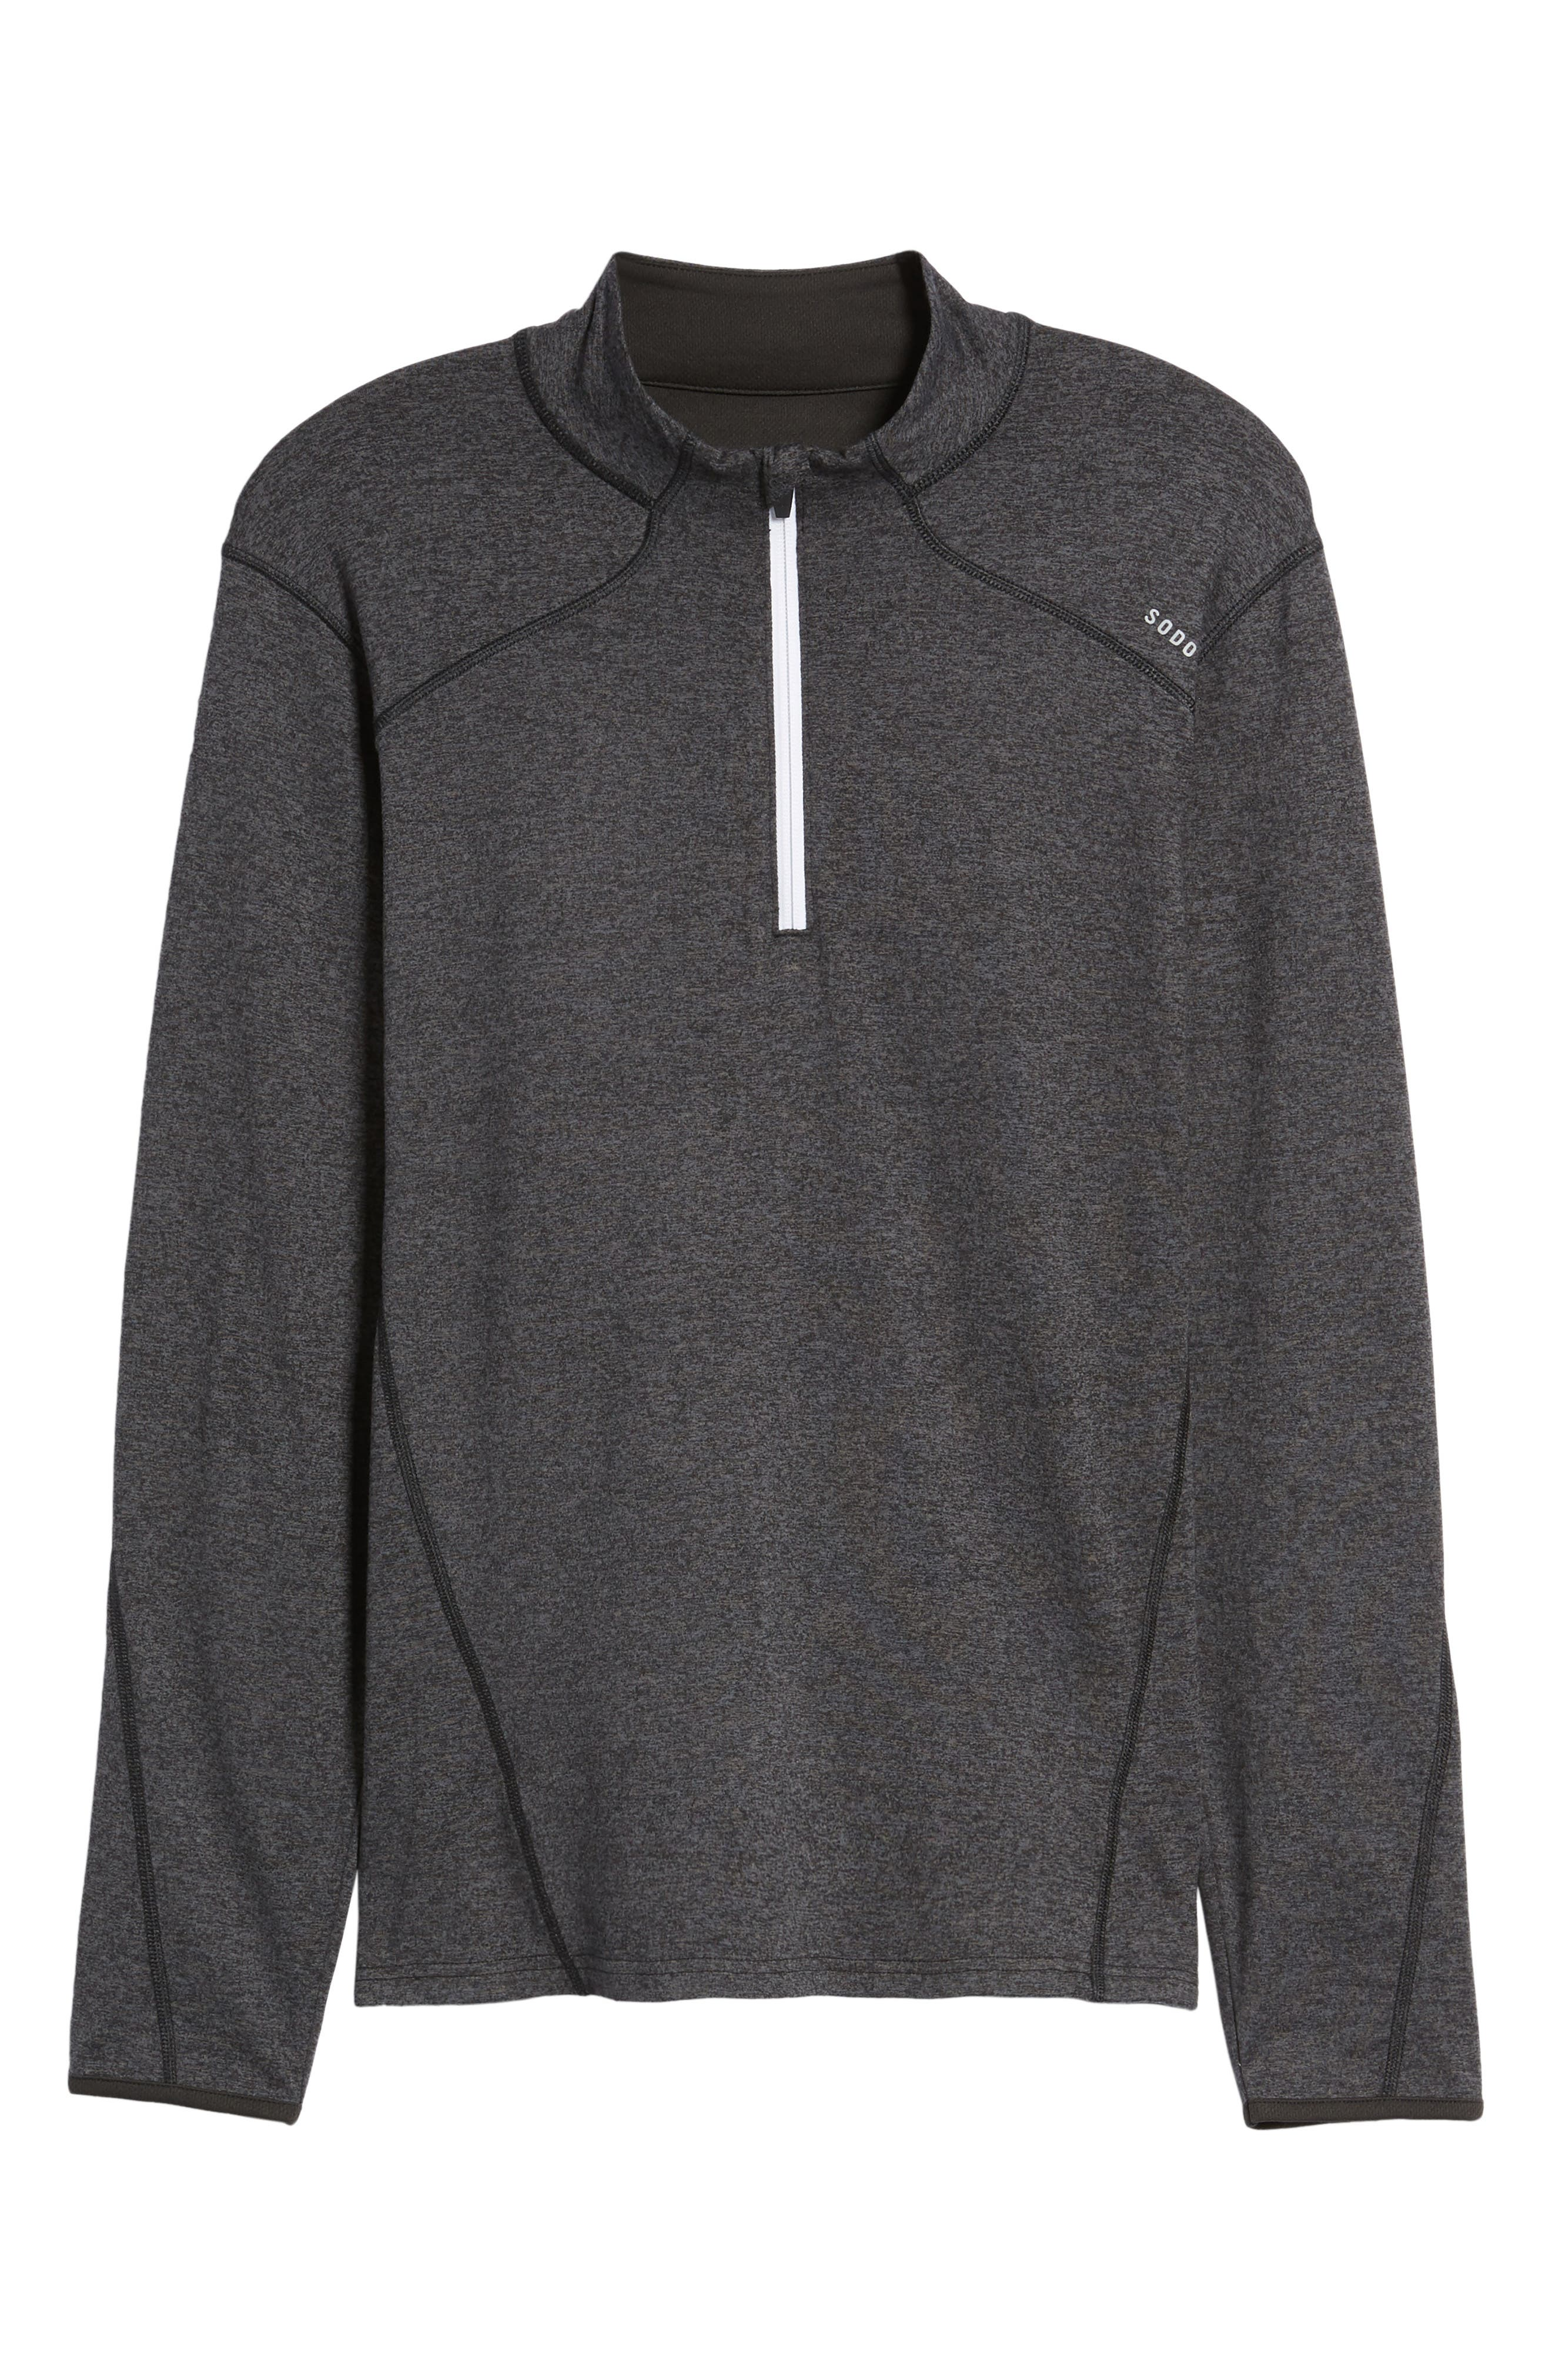 'Elevate' Moisture Wicking Stretch Quarter Zip Pullover,                             Alternate thumbnail 6, color,                             001